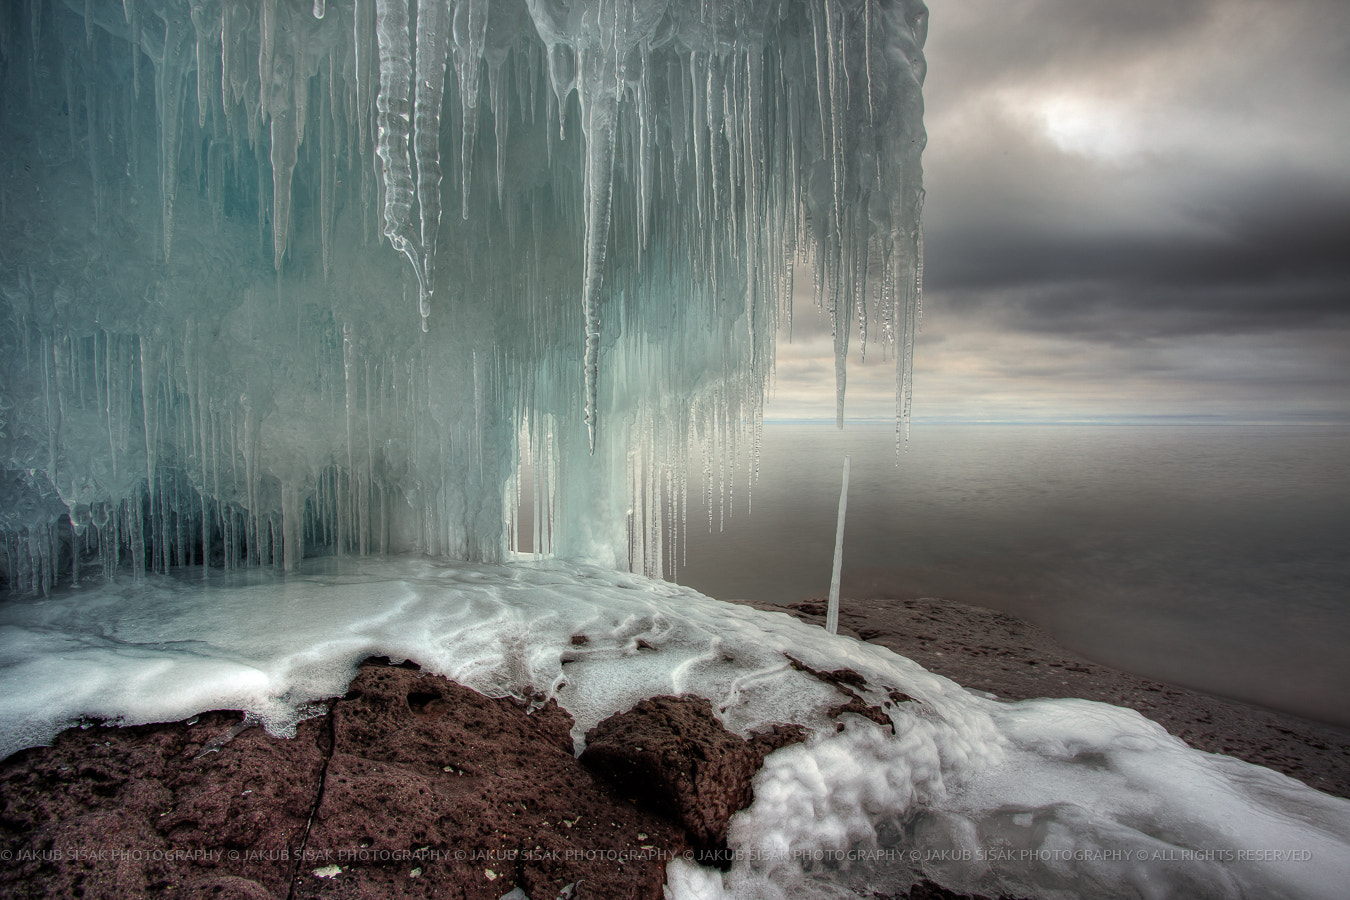 Photograph Tofte Ice Formations III by Jakub Sisak on 500px